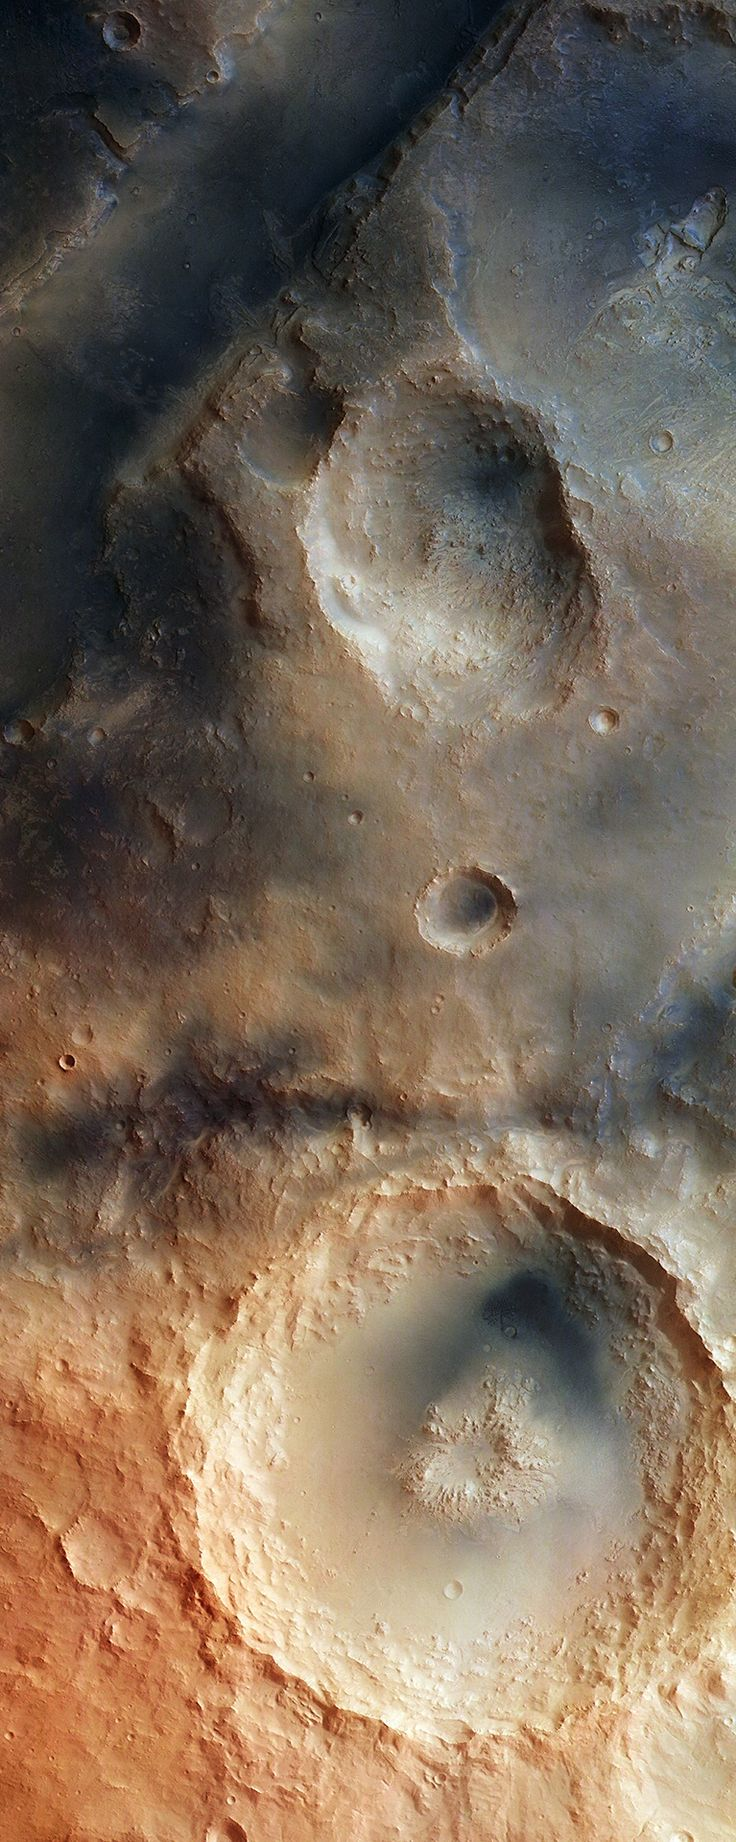 The Syrtis Major Volcanic Province - The Martian Surface Acquired by the High Resolution Stereo Camera on ESA's Mars Express Satellite, this image depicts a detailed region of the Martian Nili Fossae Graben system. This system is an area of great interest to geologists due to the variety of its landscape. The graben system contains numerous troughs, plateaus, impact craters and depressions. Planetary Scientists are actively studying the data collected from ESA's Mars Express